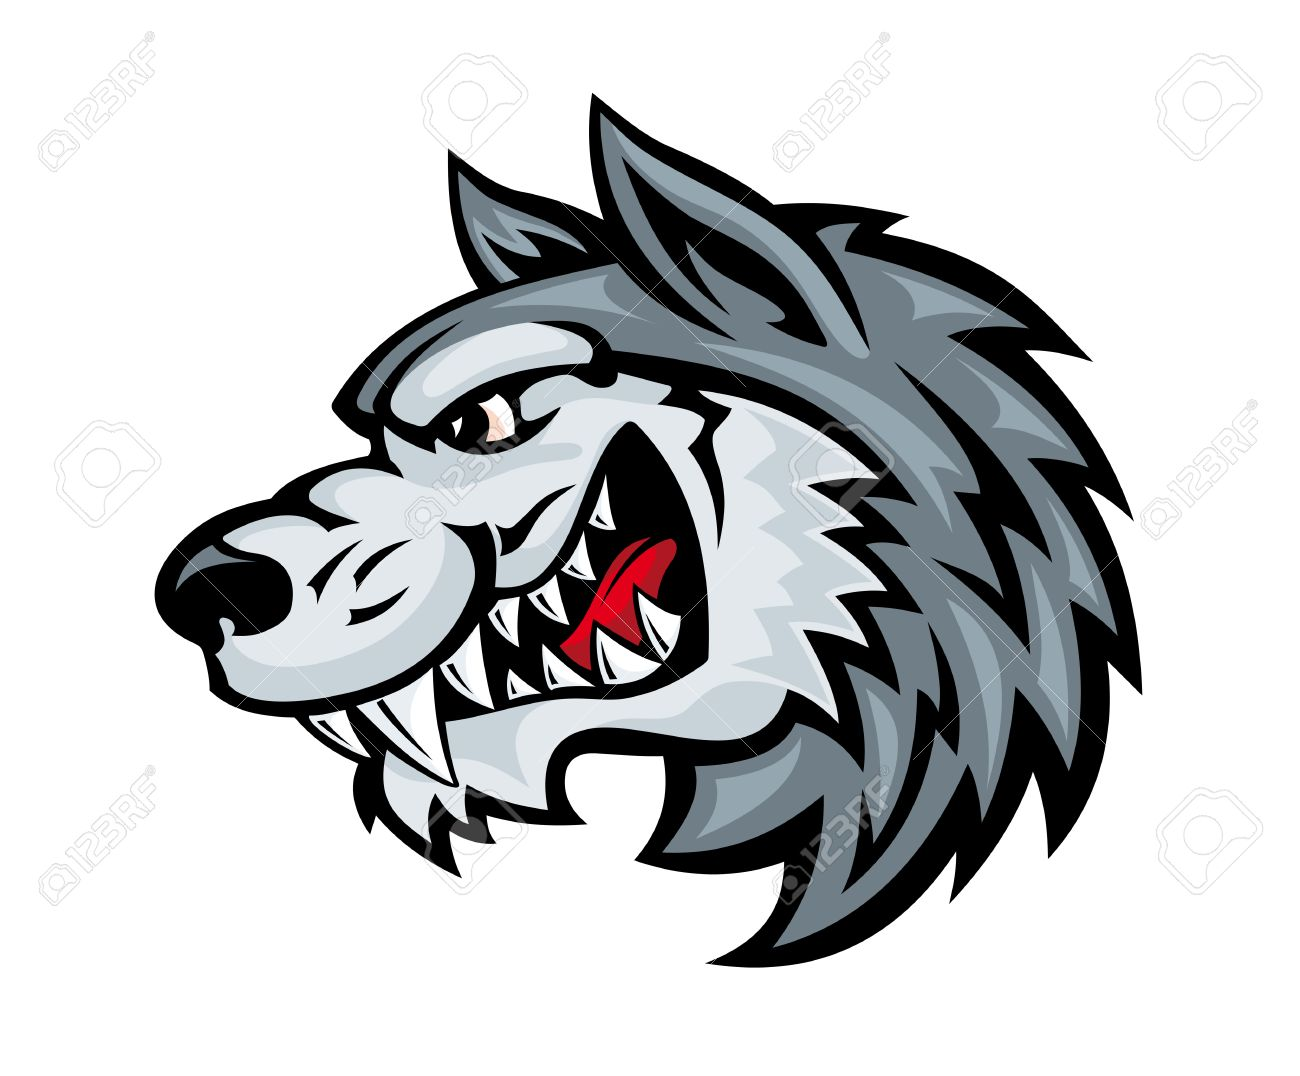 Wolf clipart angry wolf Wolf wolf head clipart Fierce